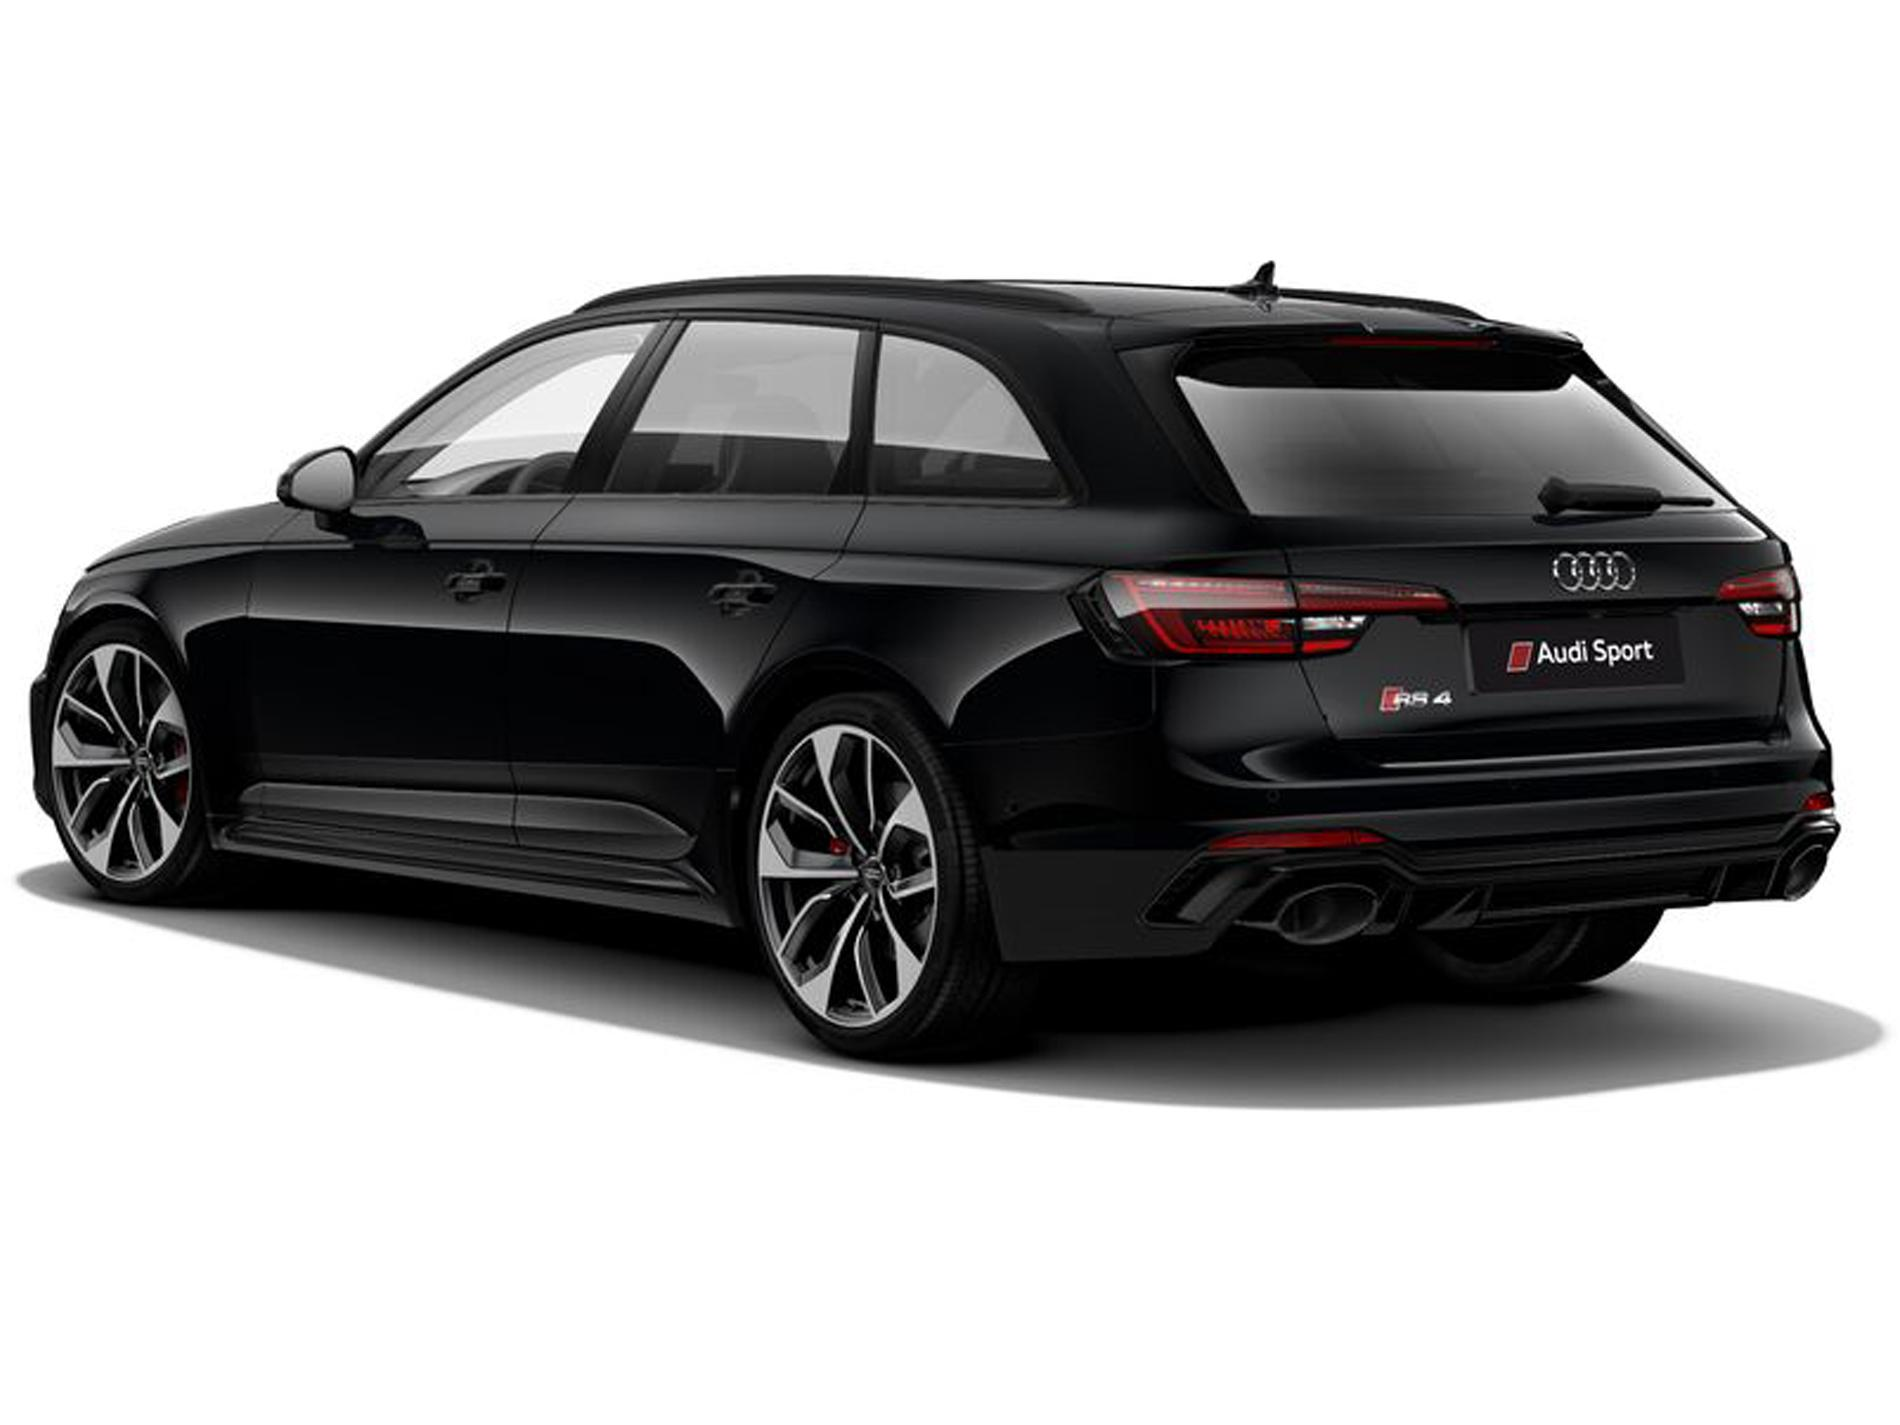 Audi RS4 Avant 331(450) kW(PS) tiptronic Panorama Sportabgasanlage - Leasing ohne Anzahlung - 171942_02